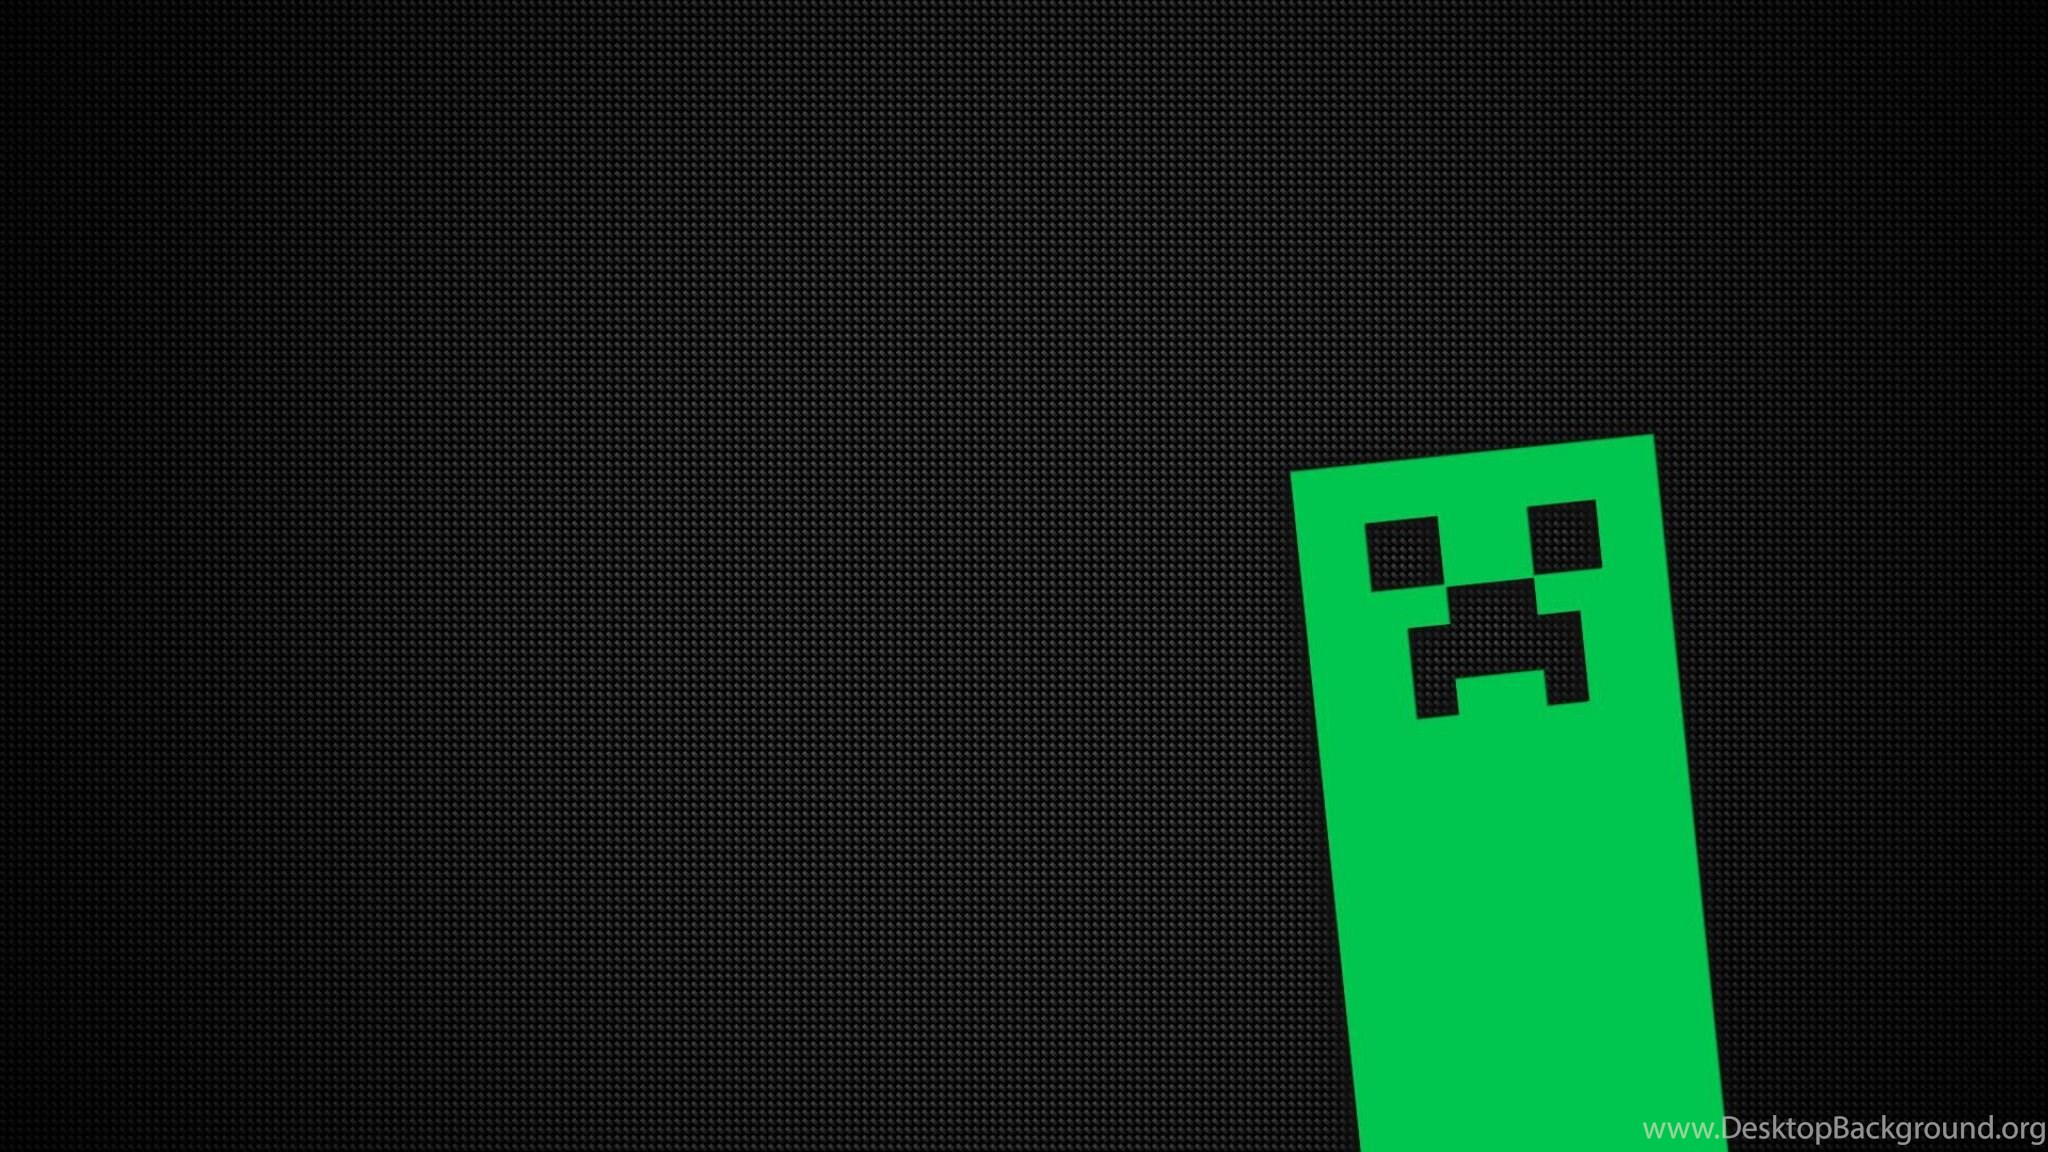 Best Wallpaper Minecraft Dual Screen - 361083_wallpapers-minecraft-creeper-2048x1152_2048x1152_h  Picture_573977.jpg